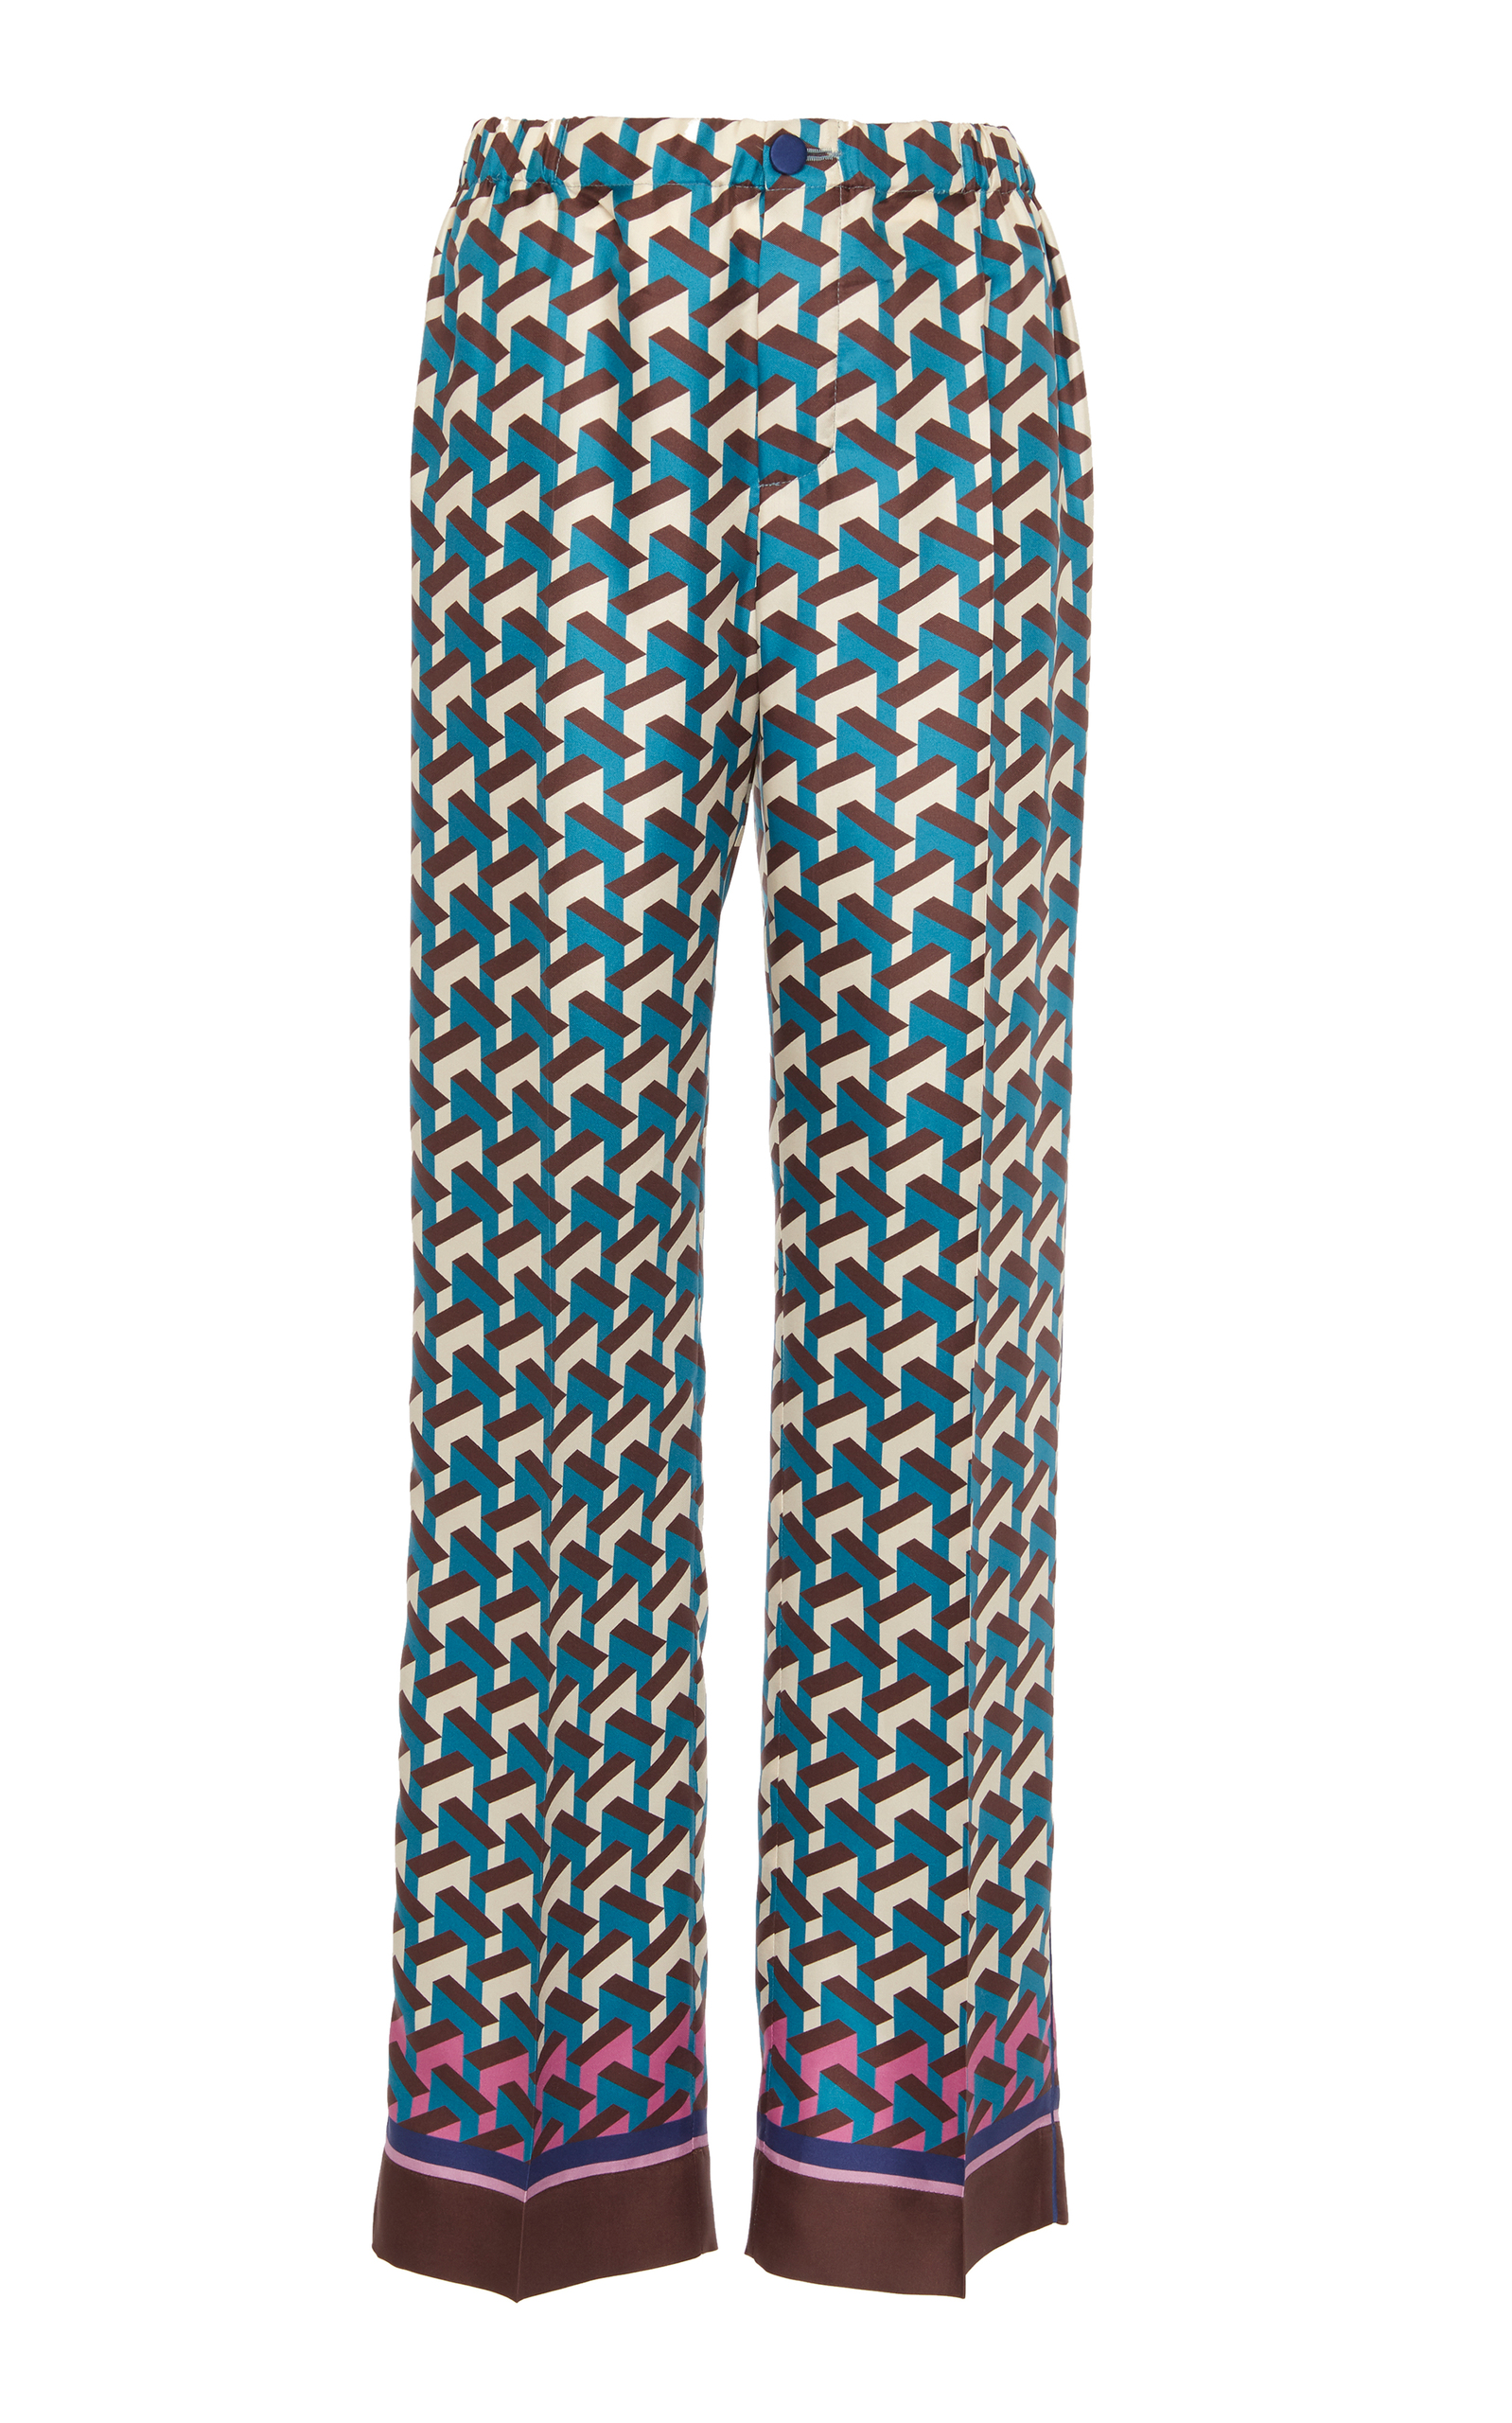 F.R.S FOR RESTLESS SLEEPERS Etere Printed Silk-Twill Straight-Leg Pants in Teal